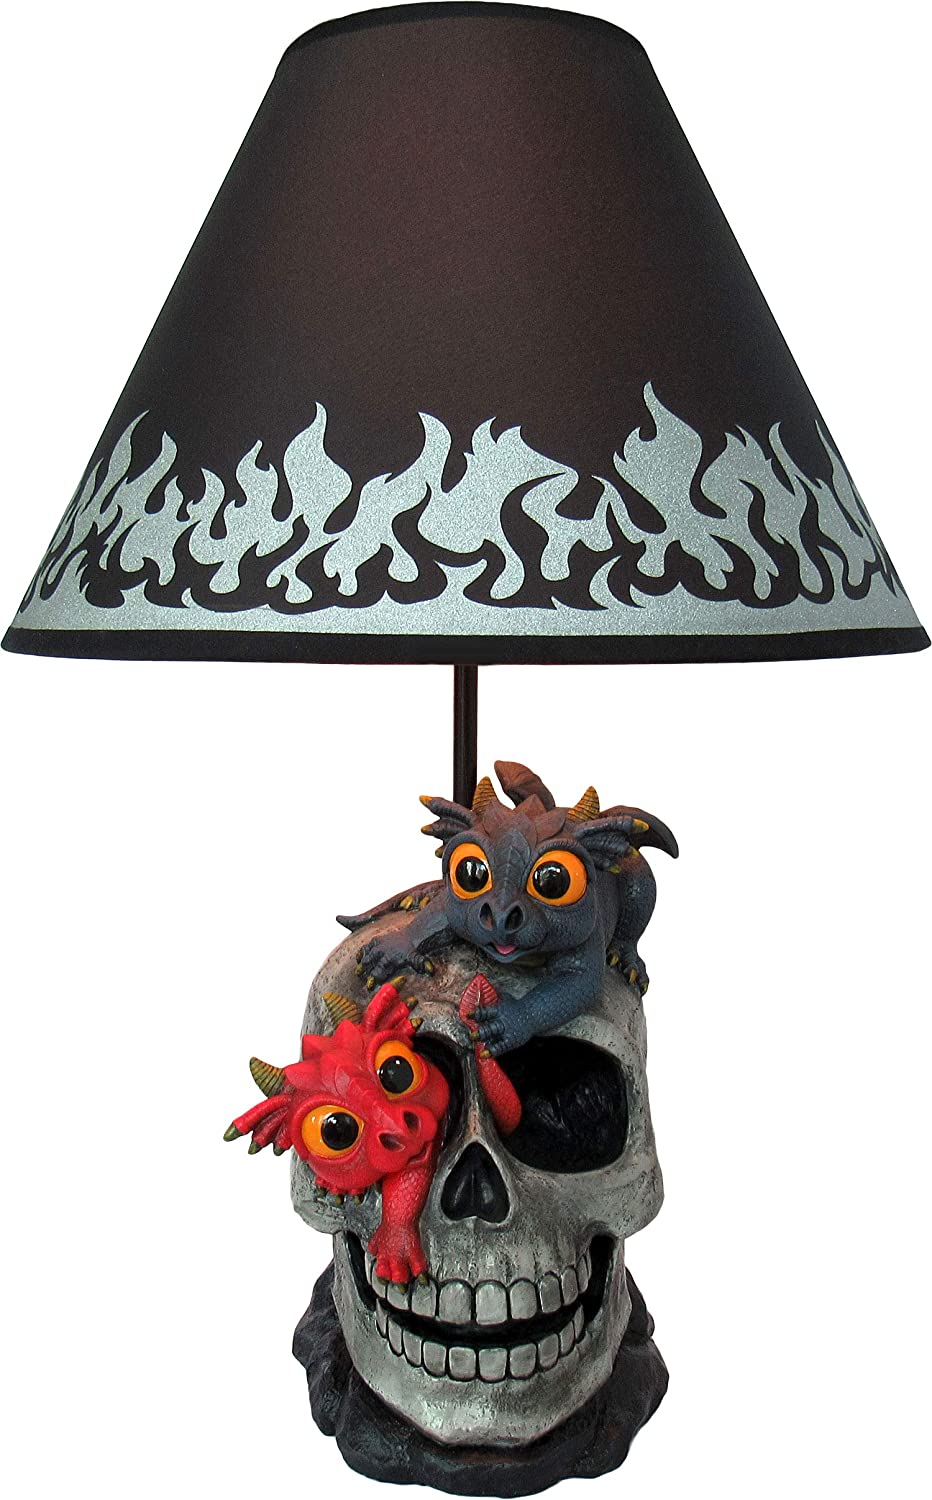 World of Wonders - Dreamland Dragons Series - Mischief & Magic - Collectible Cute Dragon Table Lamp Ruby and Onyx Playing on Medieval Skull Fantasy Home Decor Lighting Accent Desk Light, 20-inch